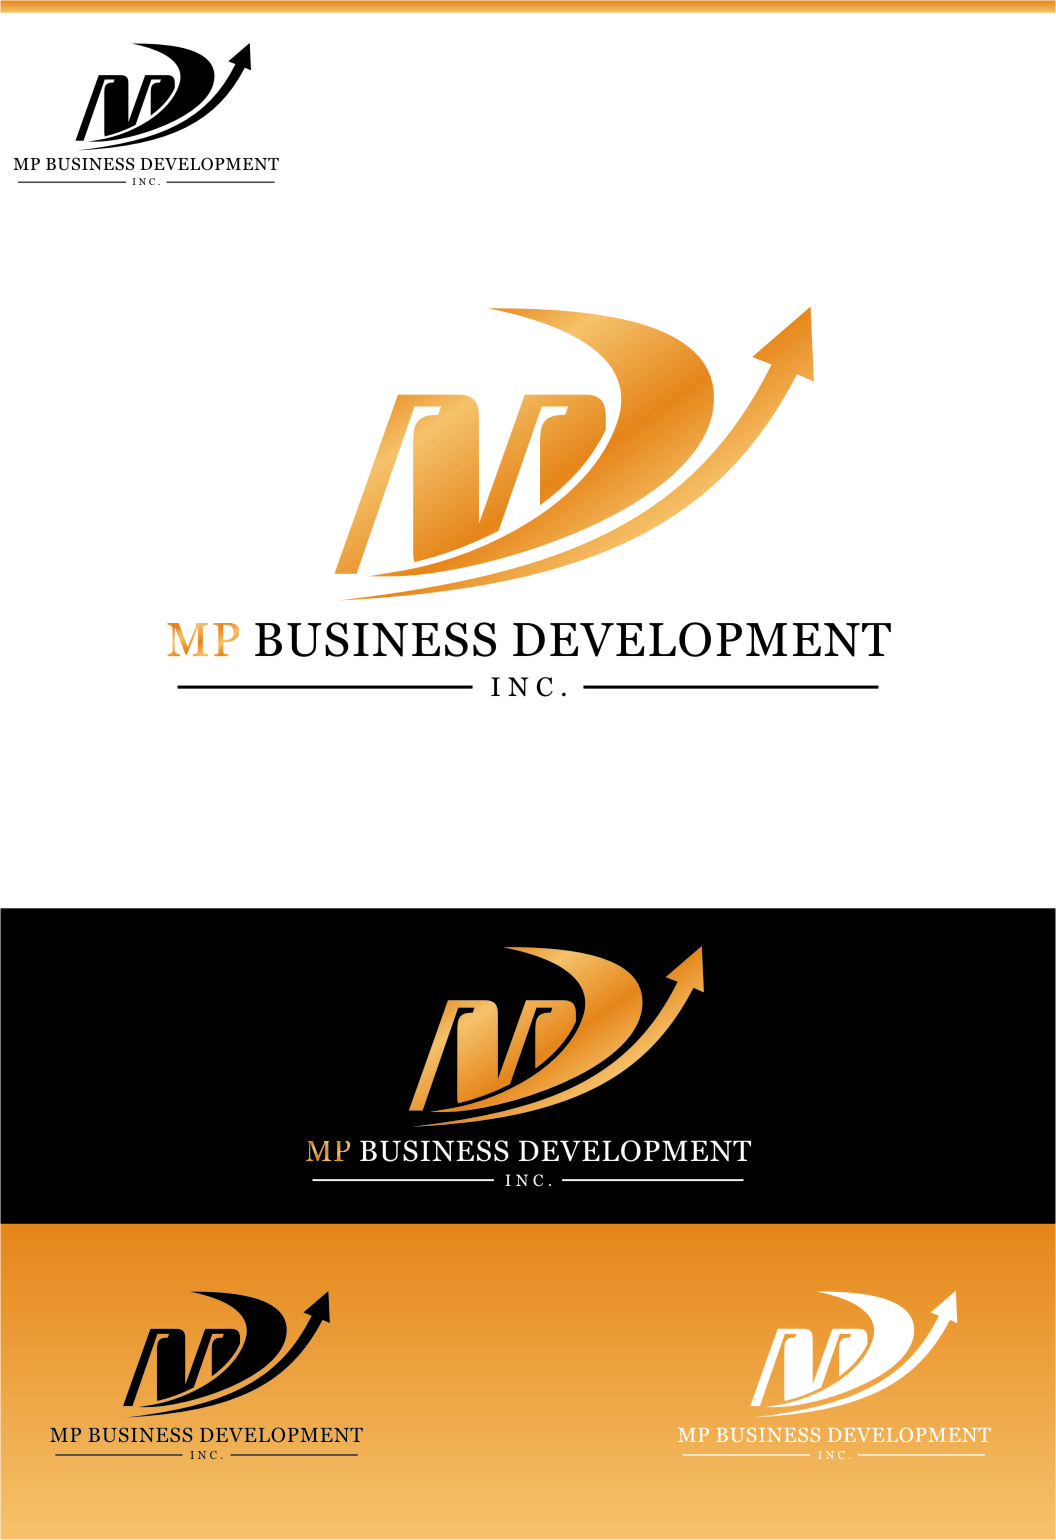 Logo Design by Ngepet_art - Entry No. 154 in the Logo Design Contest MP Business Development Inc. Logo Design.